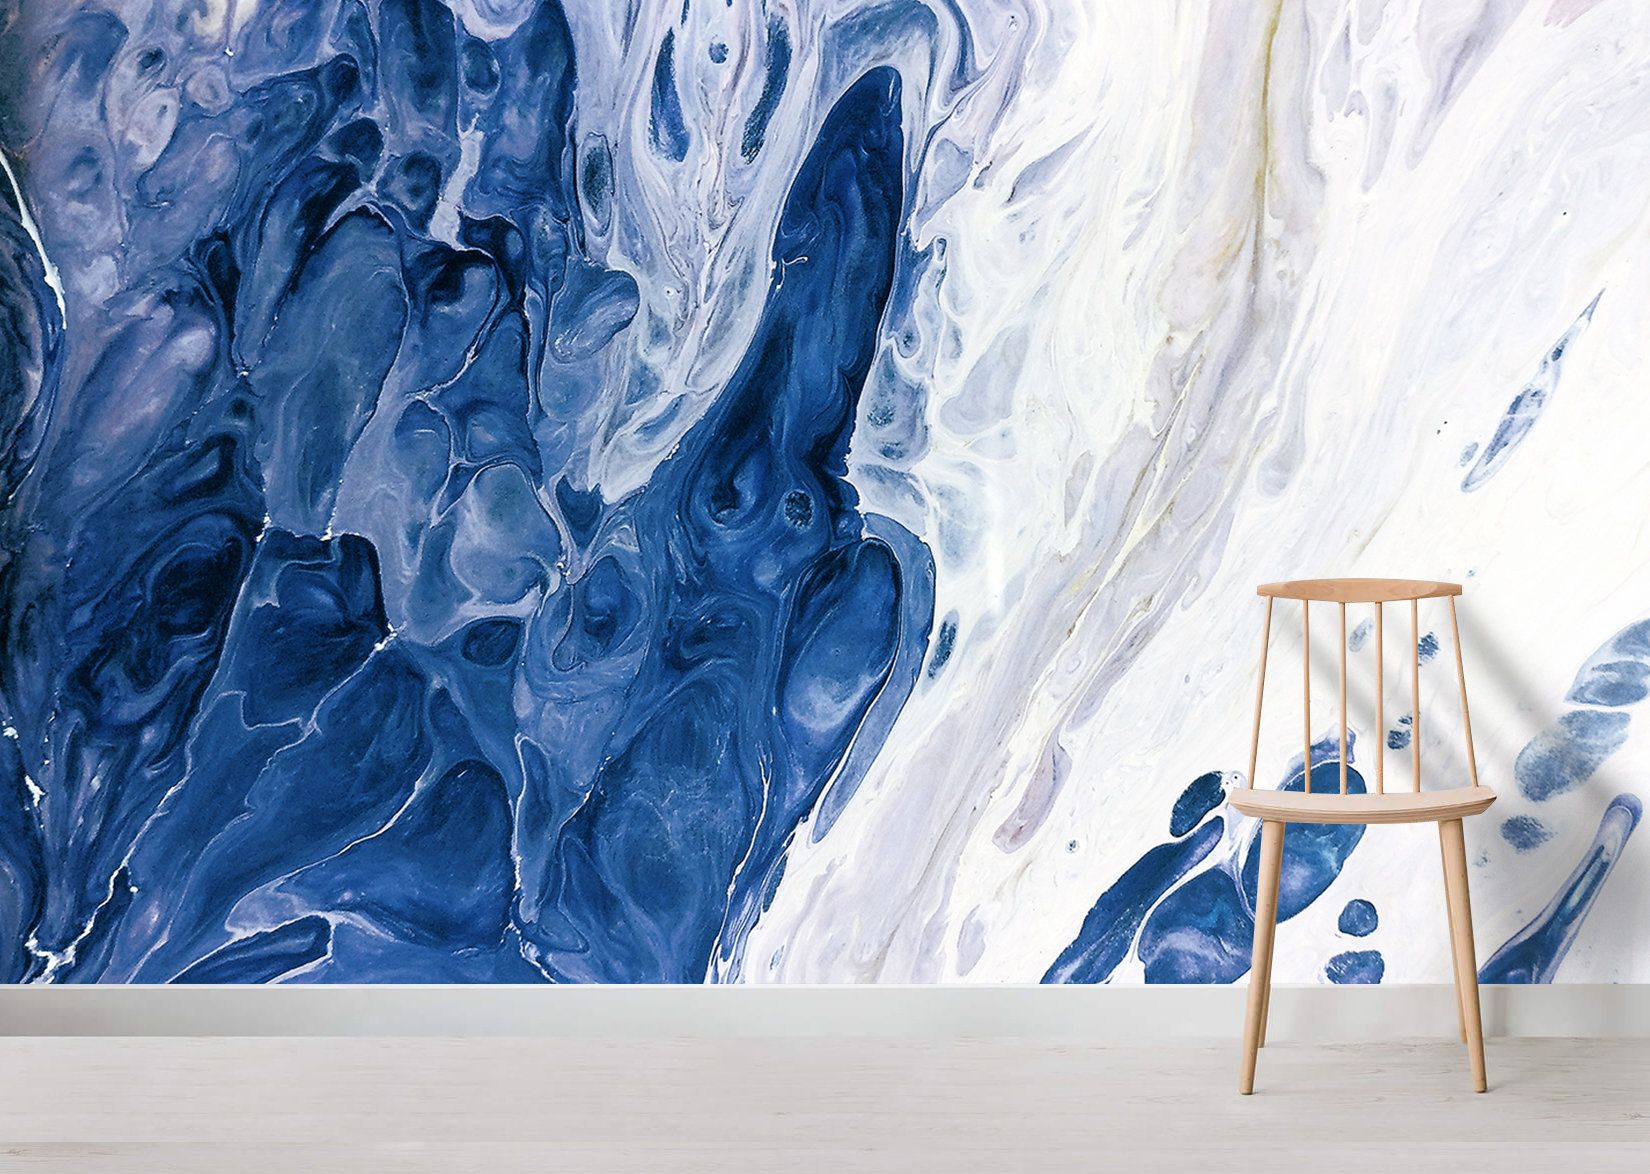 Abstract Blue White Marble Wallpaper Nature Wall Painting Handmade Painted Marble Wall Mural Living Room Decor Peel And Stick 2020